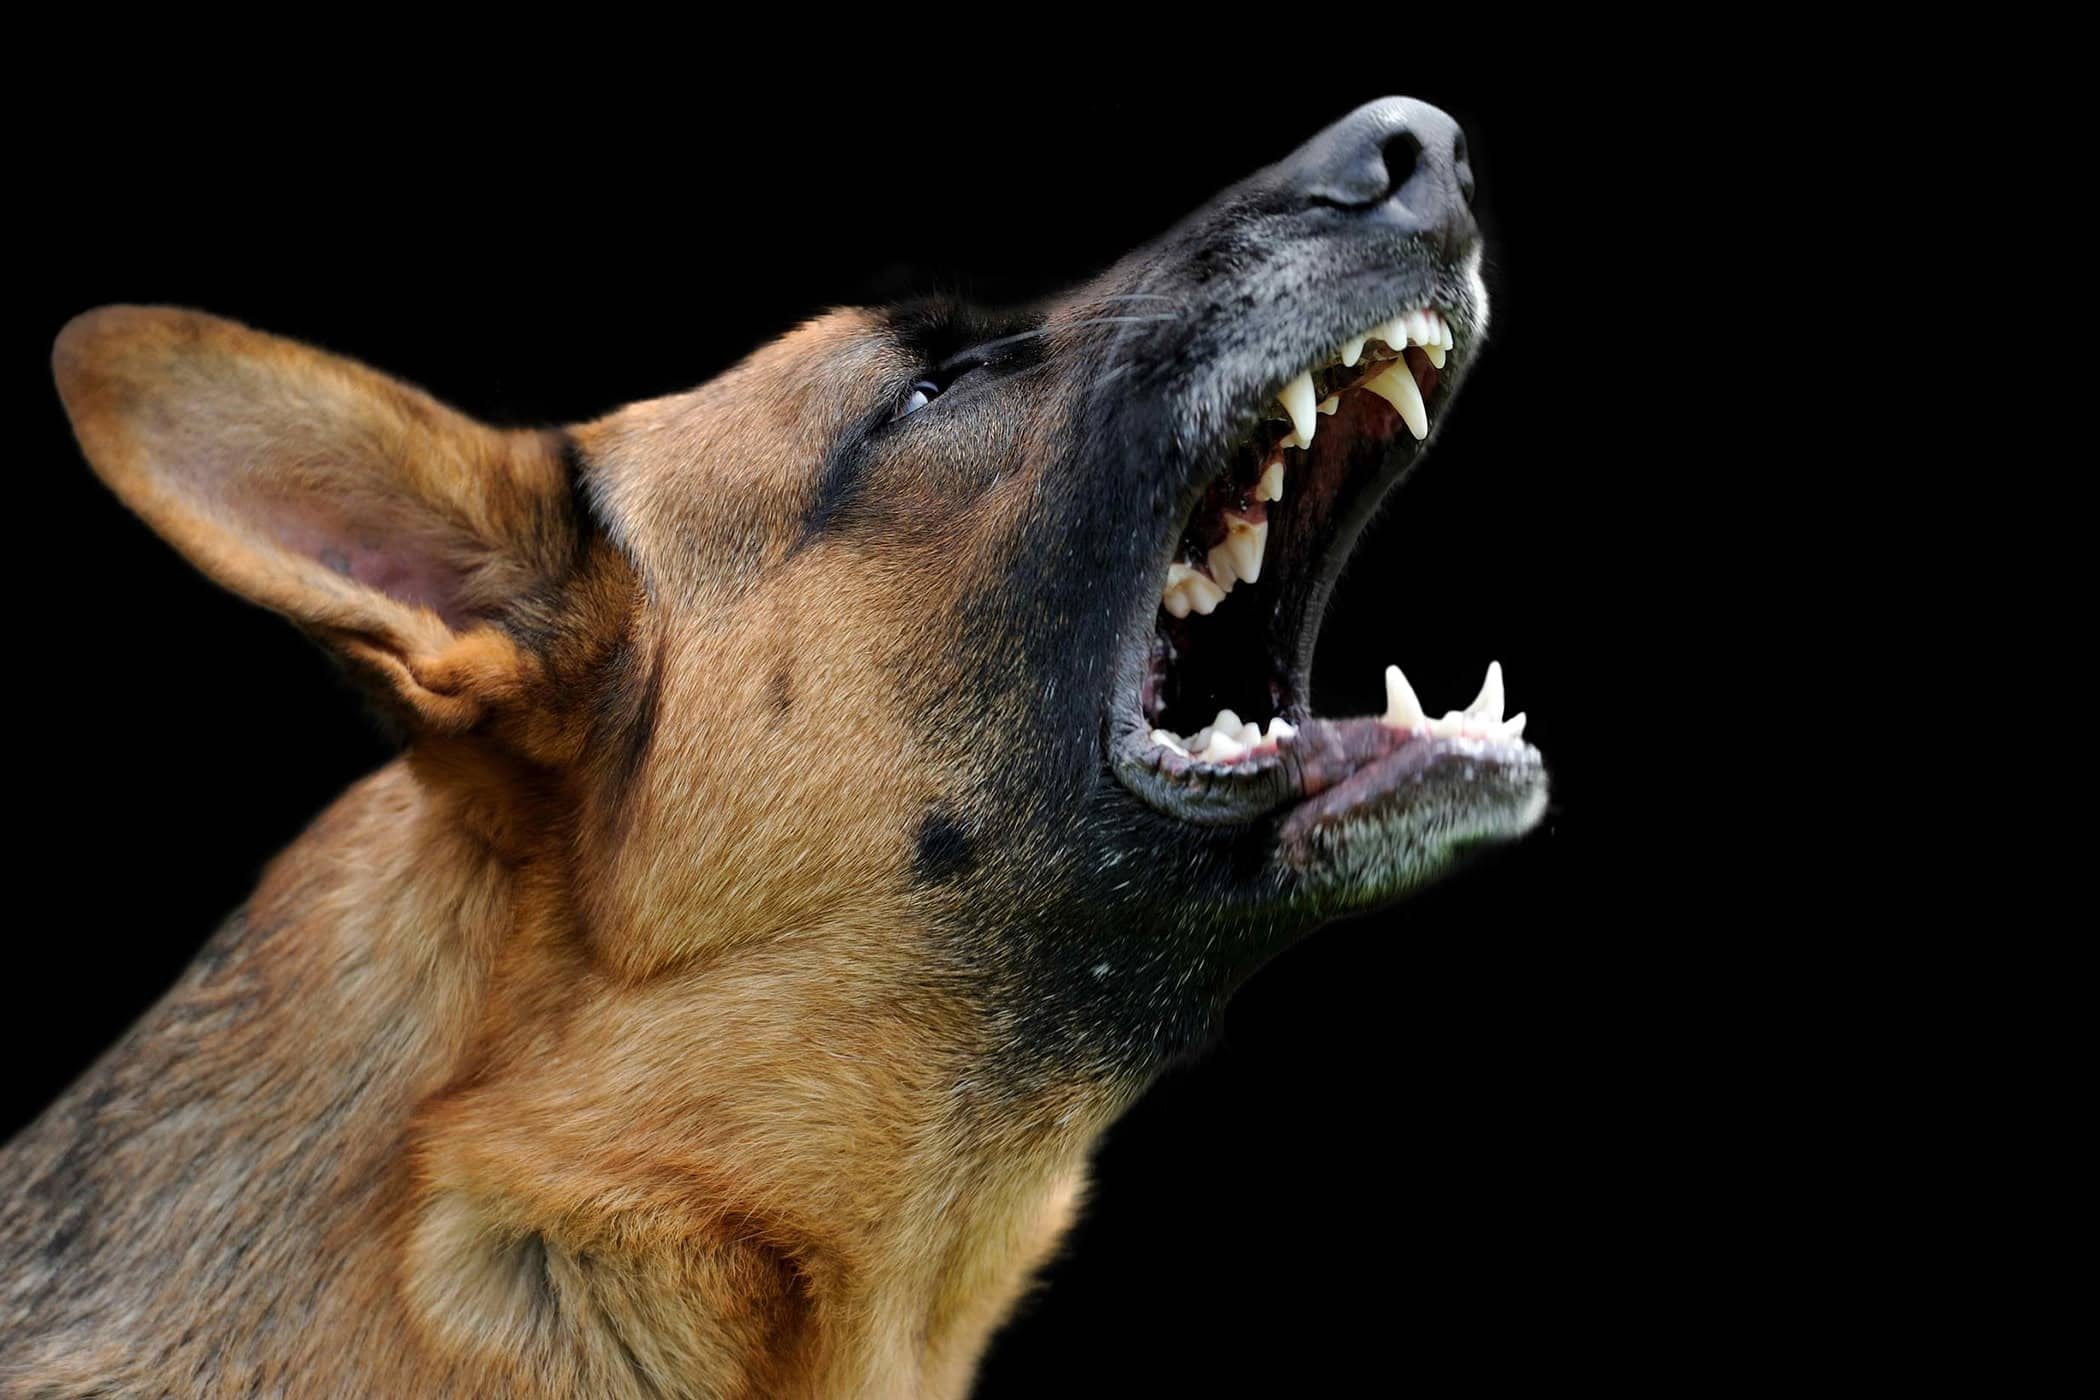 Aggression and rehabilitation - All Bark and Bite? - We can help!